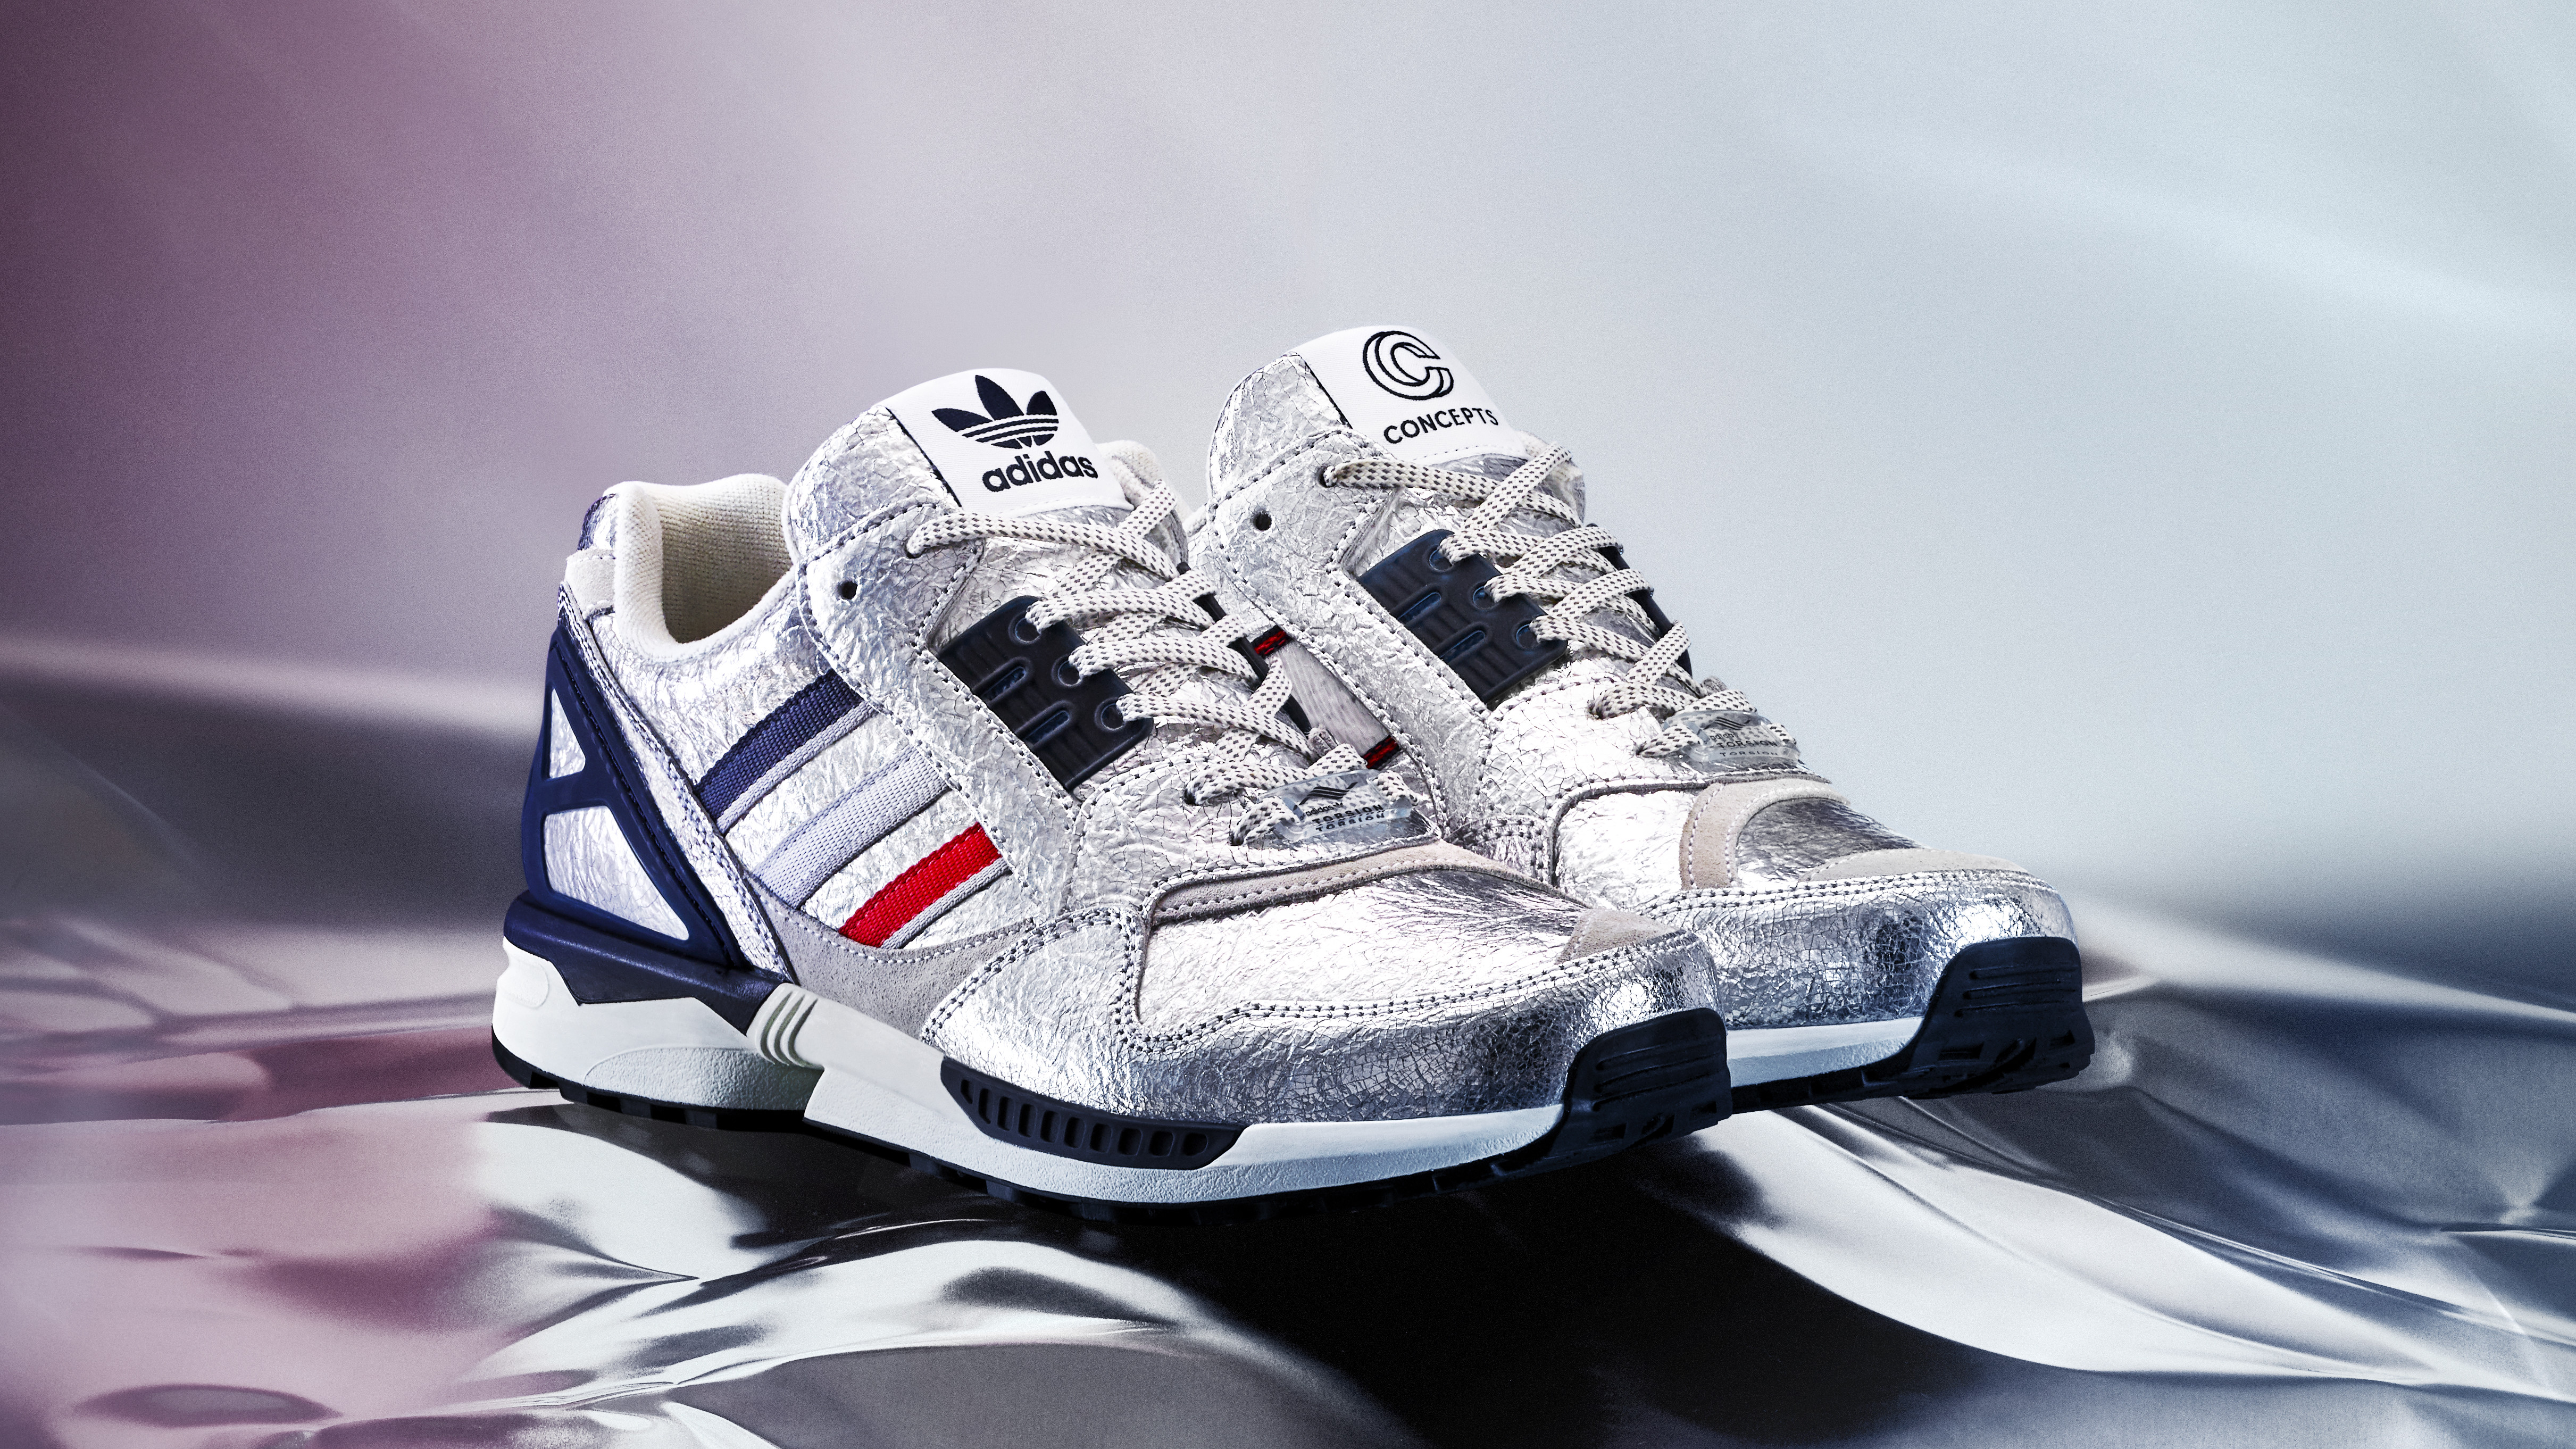 penalty slide Concise  Concepts x Adidas ZX 9000 A-ZX Series Release Date | Sole Collector